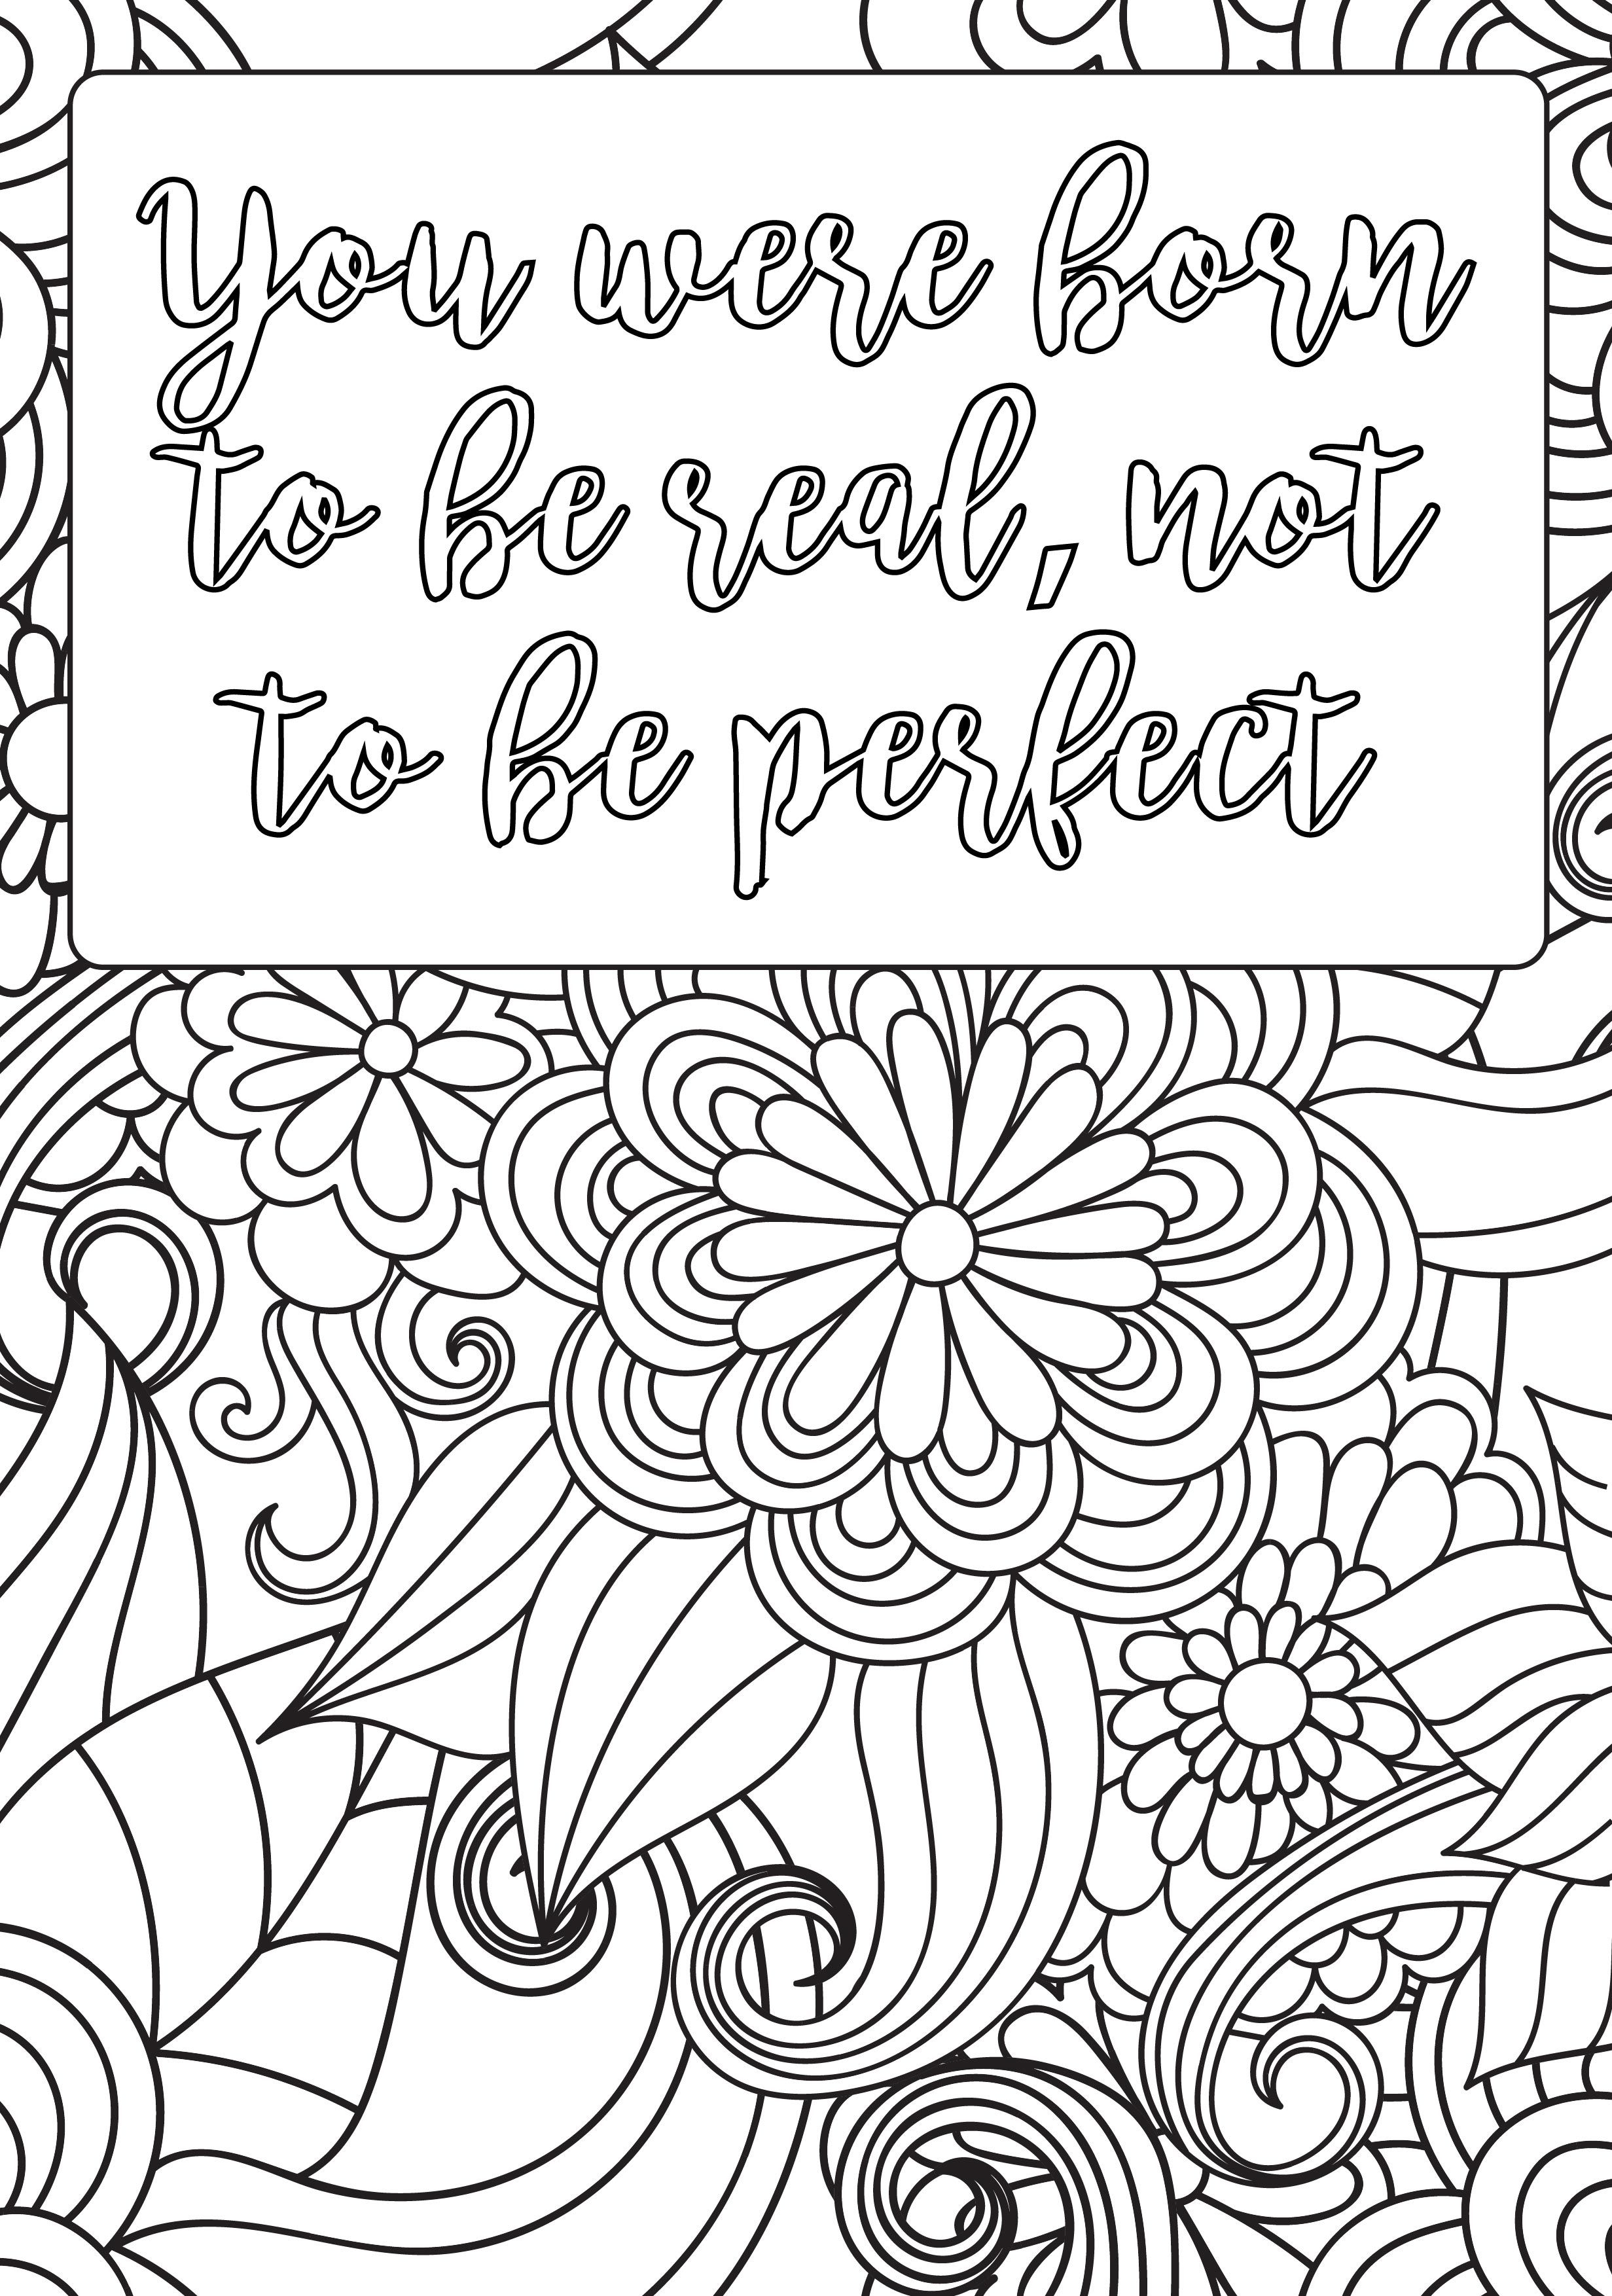 Positive Affirmations Are So Important For Building Self Esteem Resilience And A Growth Mindset If You Would Like Your Own Custom Colouring Pages Please